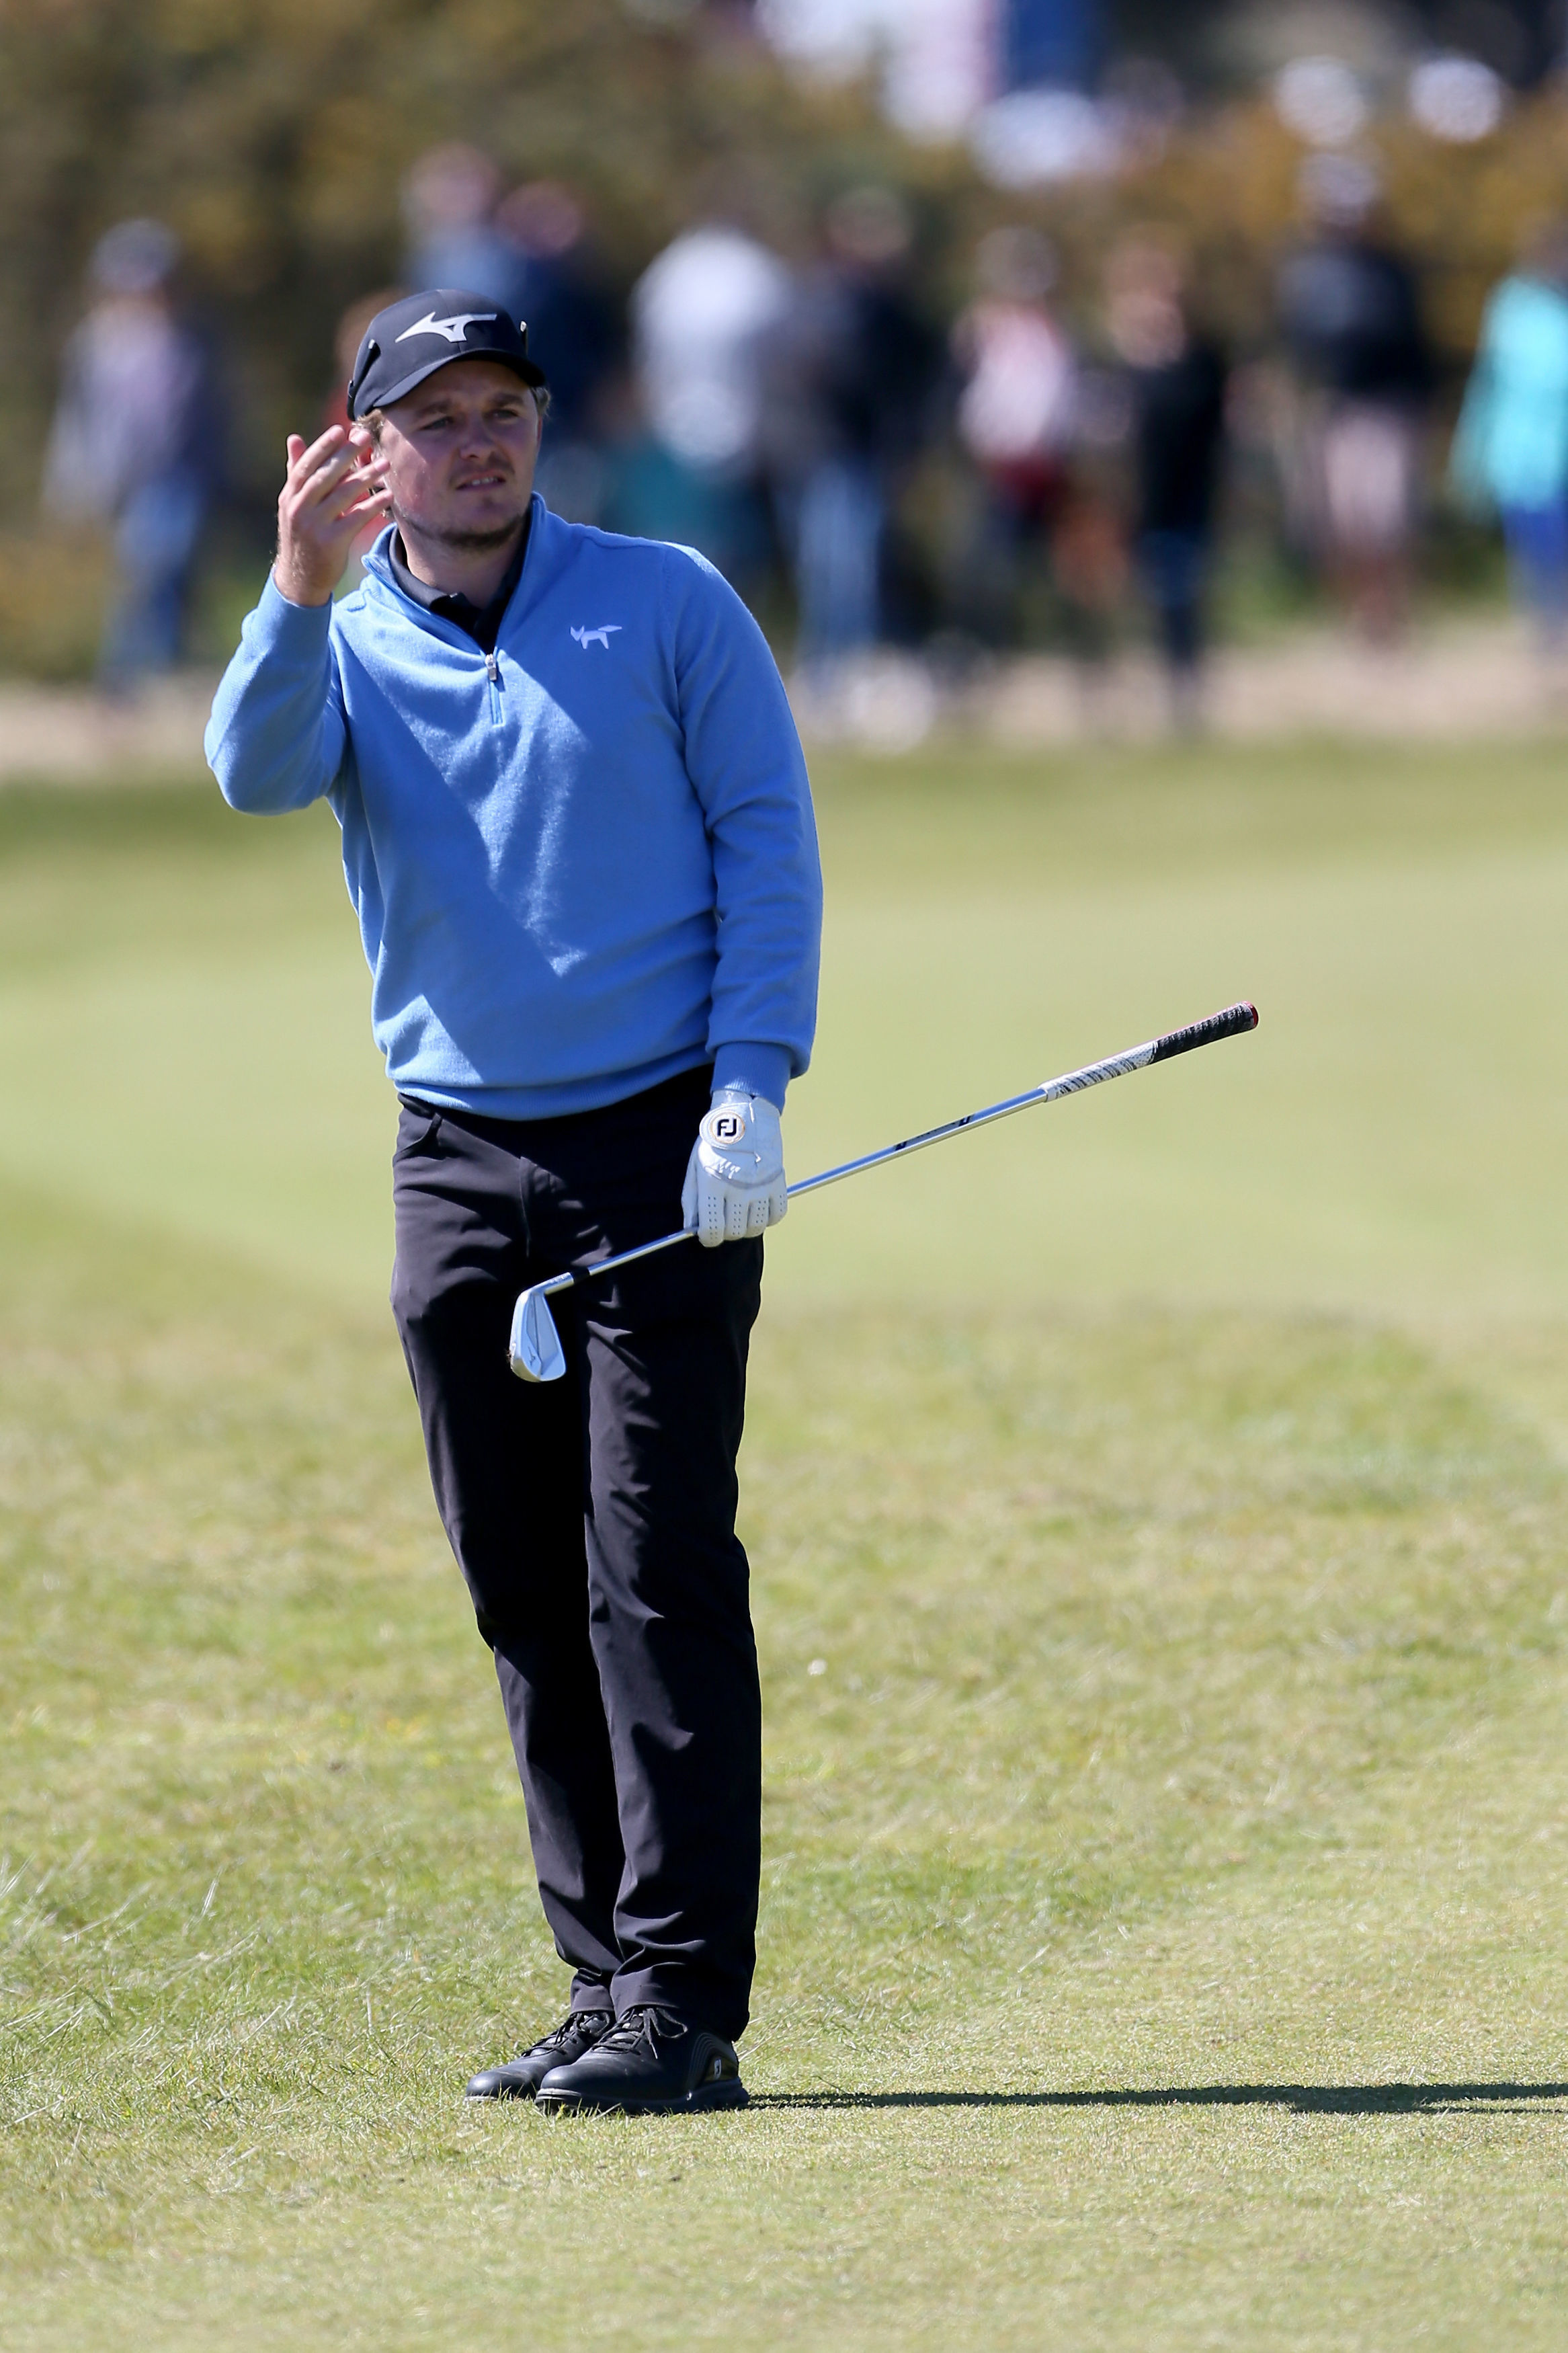 Eddie Pepperell in action today Picture: PA